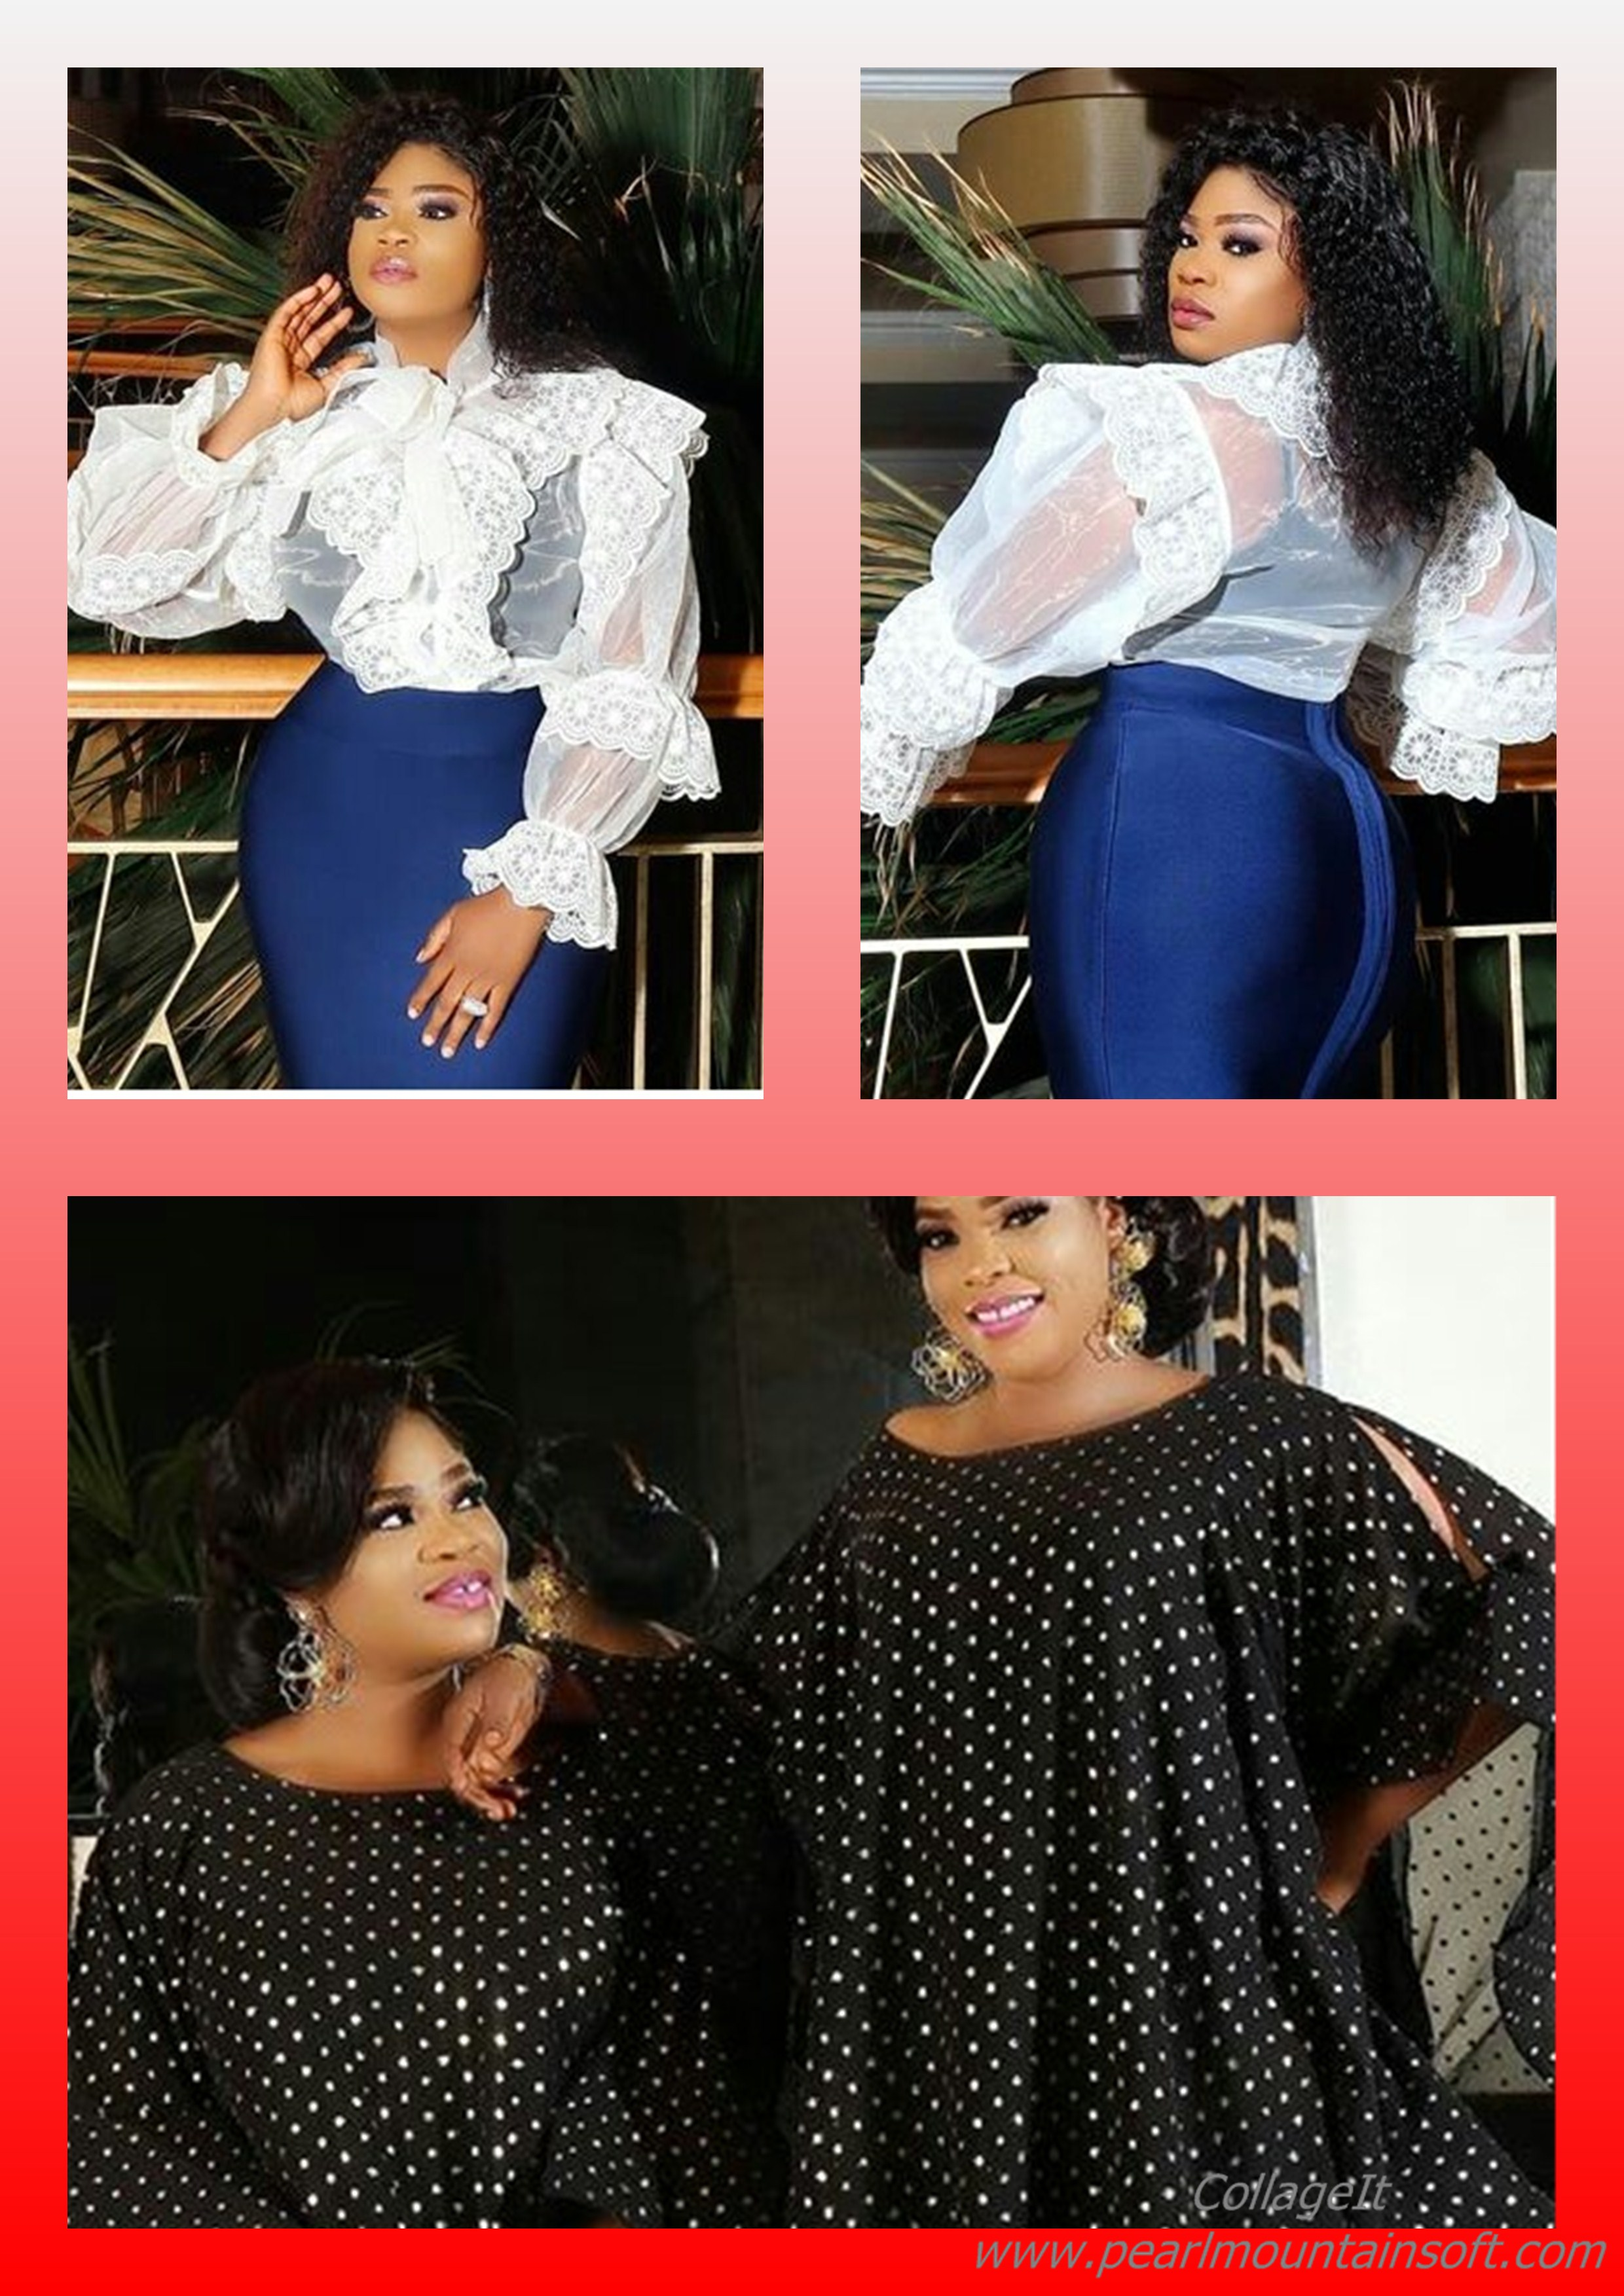 CAN YOU TELL WHICH OF THEM IS ENIOLA AJAO AND WHICH IS HER TWIN?